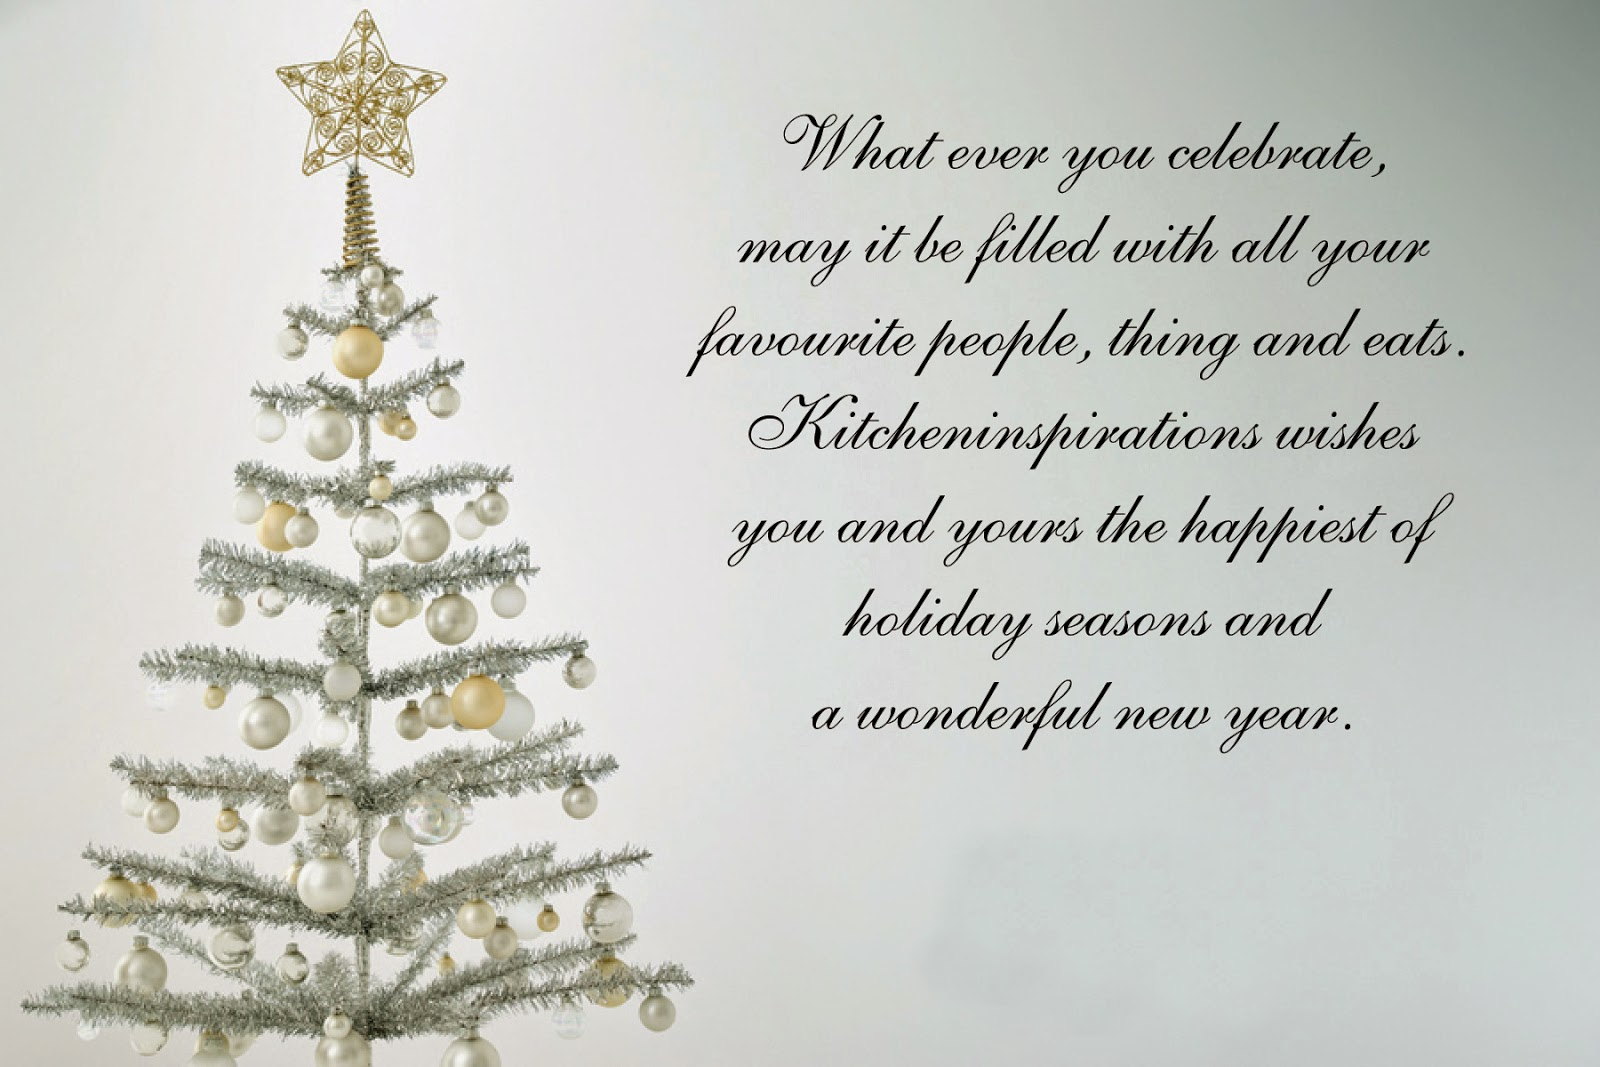 Happy Dussehra Quotes: Merry Christmas Wallpaper For Facebook